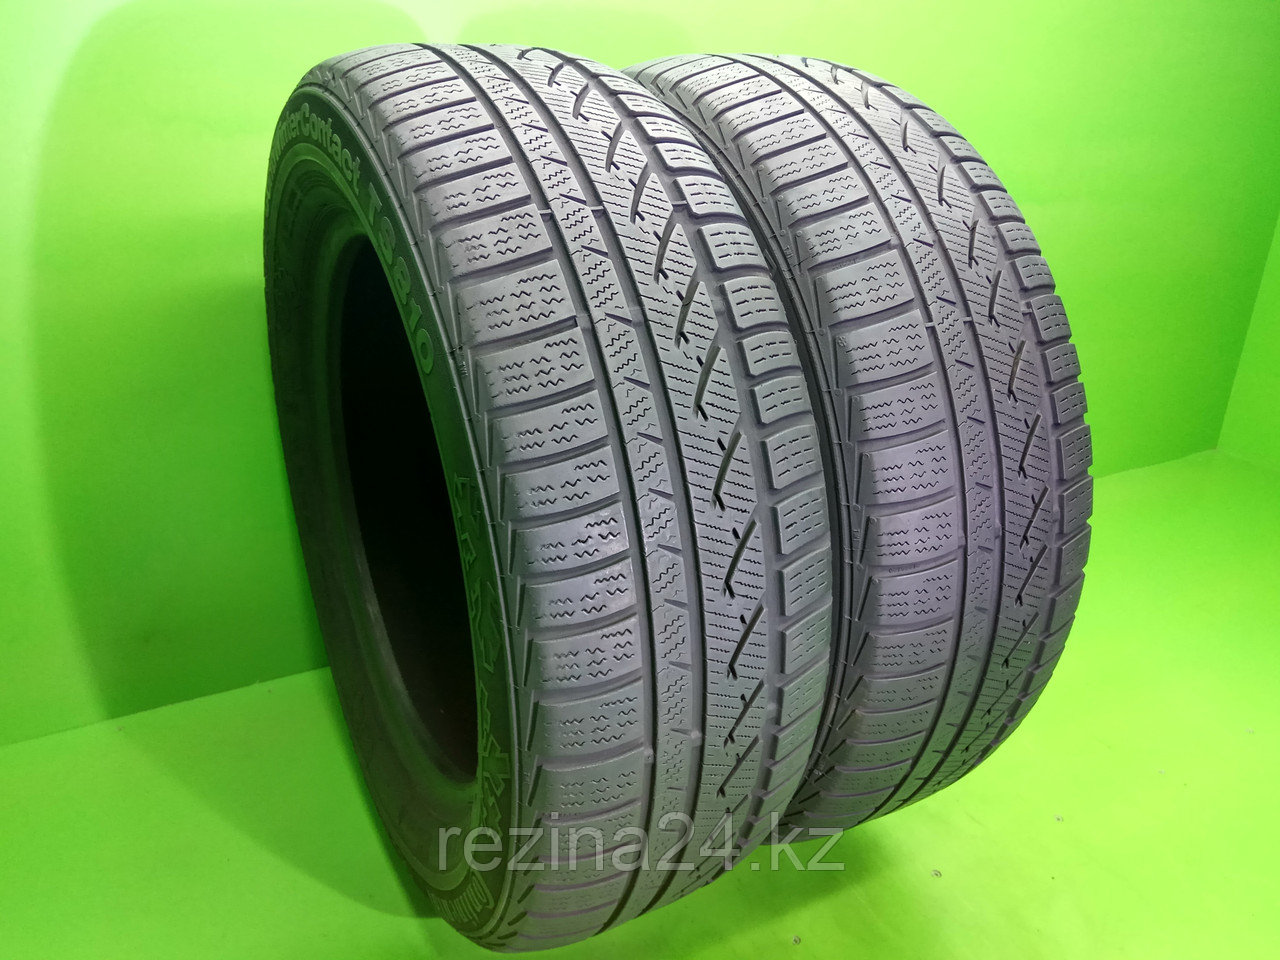 205/60 R 16 (92H) CONTINENTAL Conti Winter Contact TS 810 всесезонные б/у шины